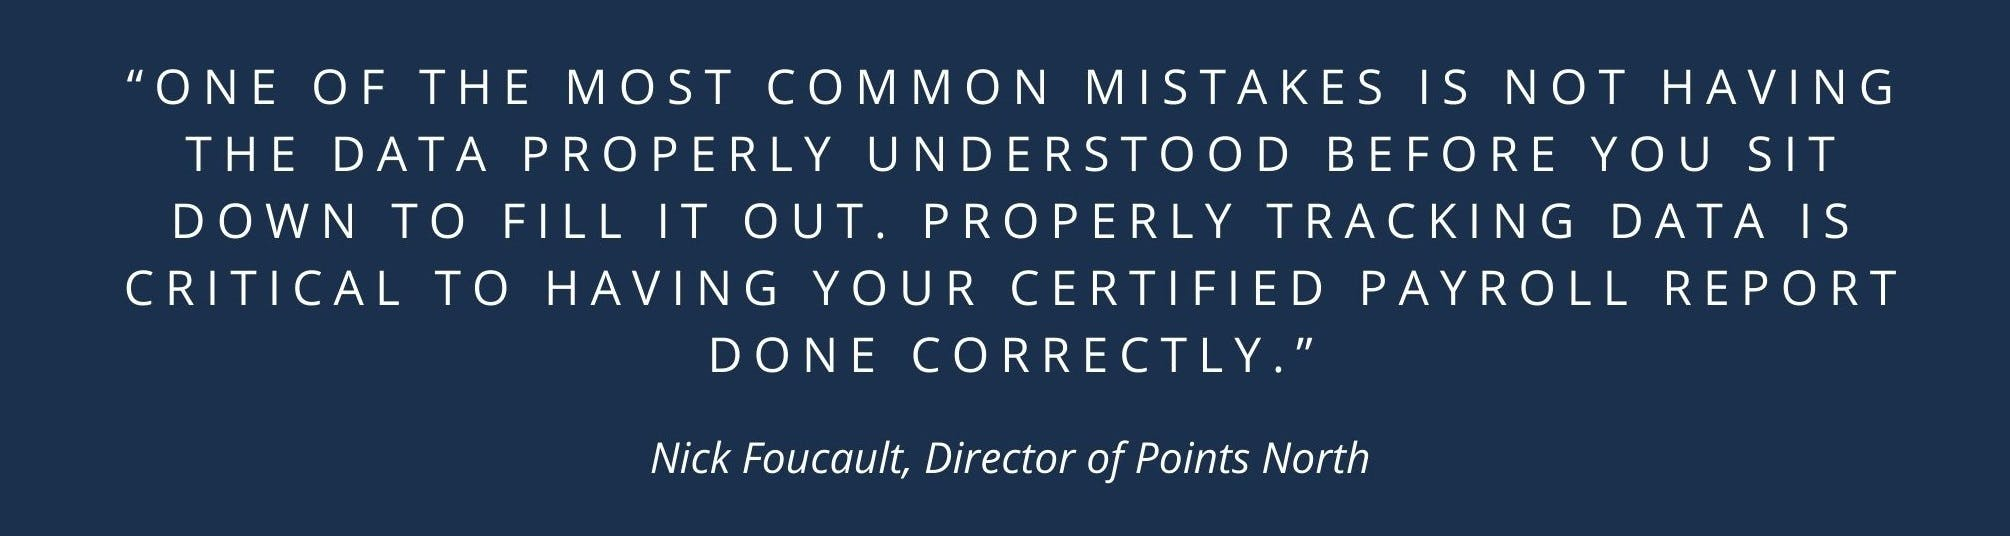 Common Mistakes To Avoid When Filing Certified Payroll Reports